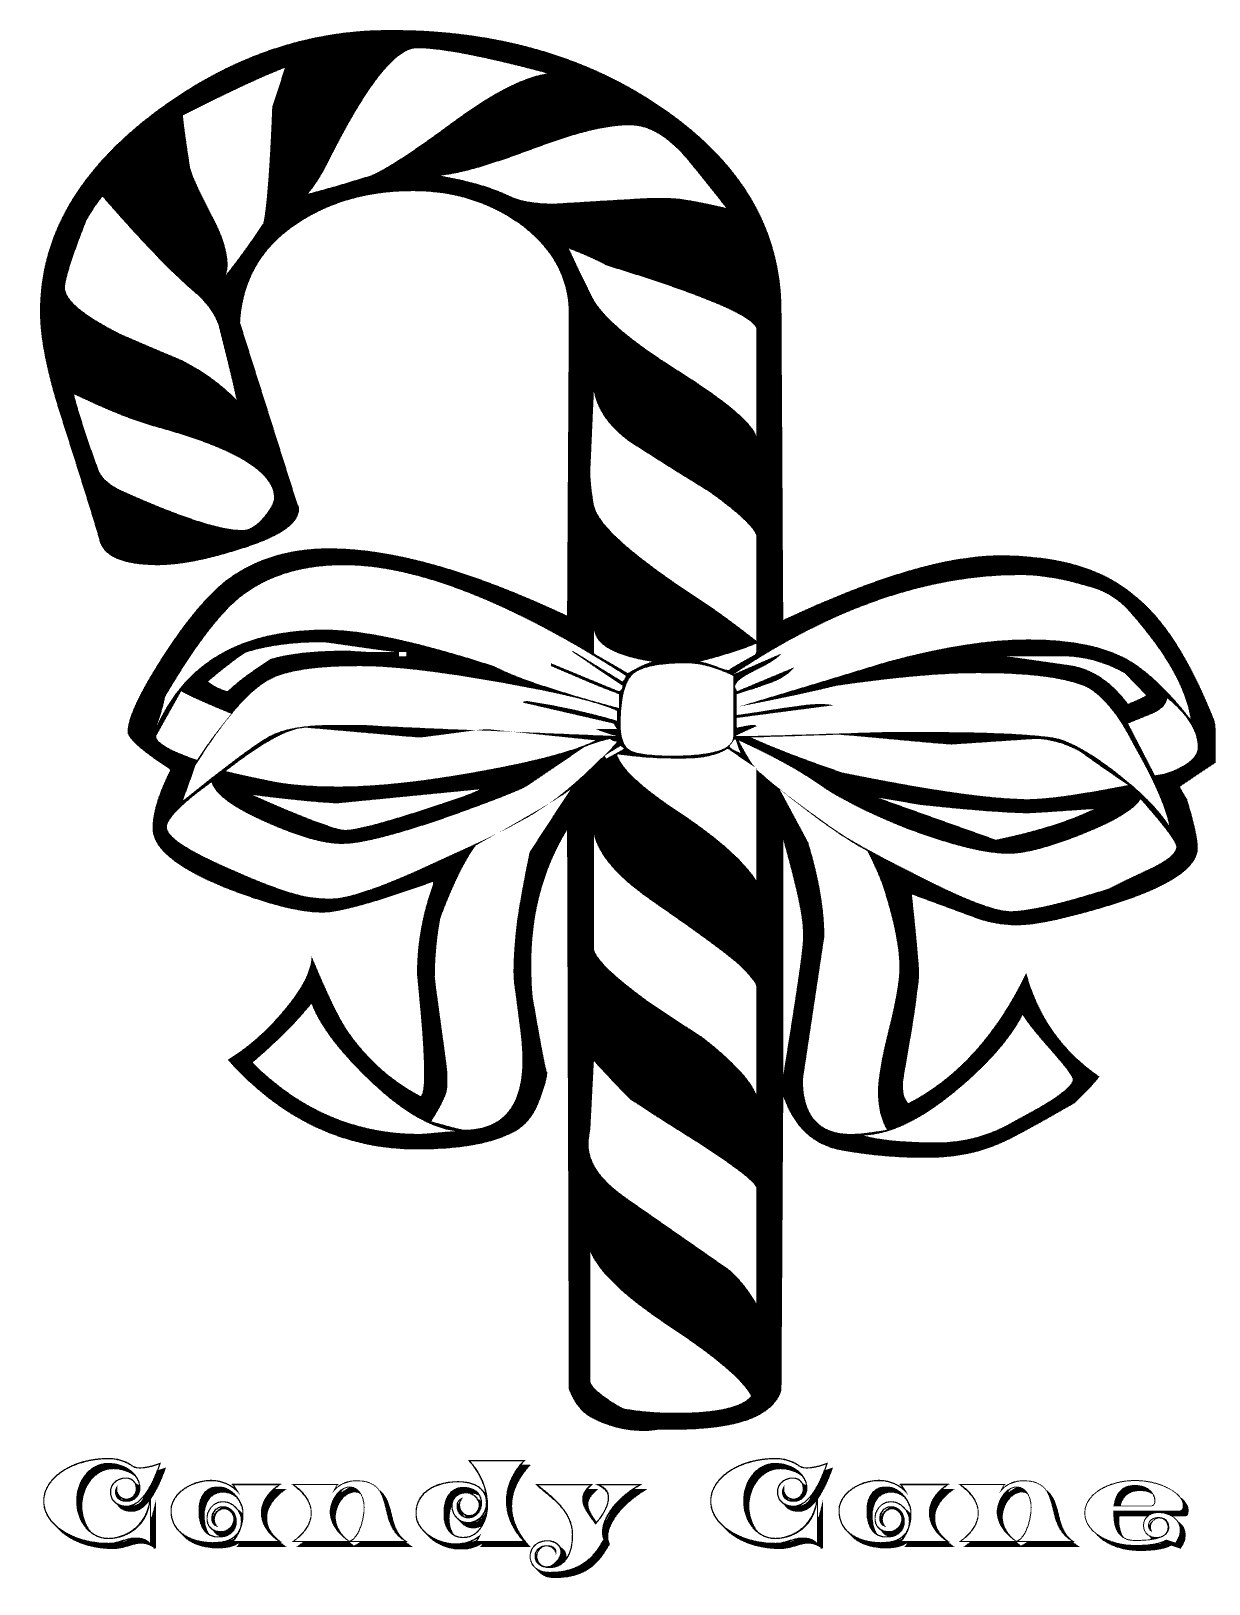 Candy Canes Coloring Pages  Free Printable Candy Cane Coloring Pages For Kids